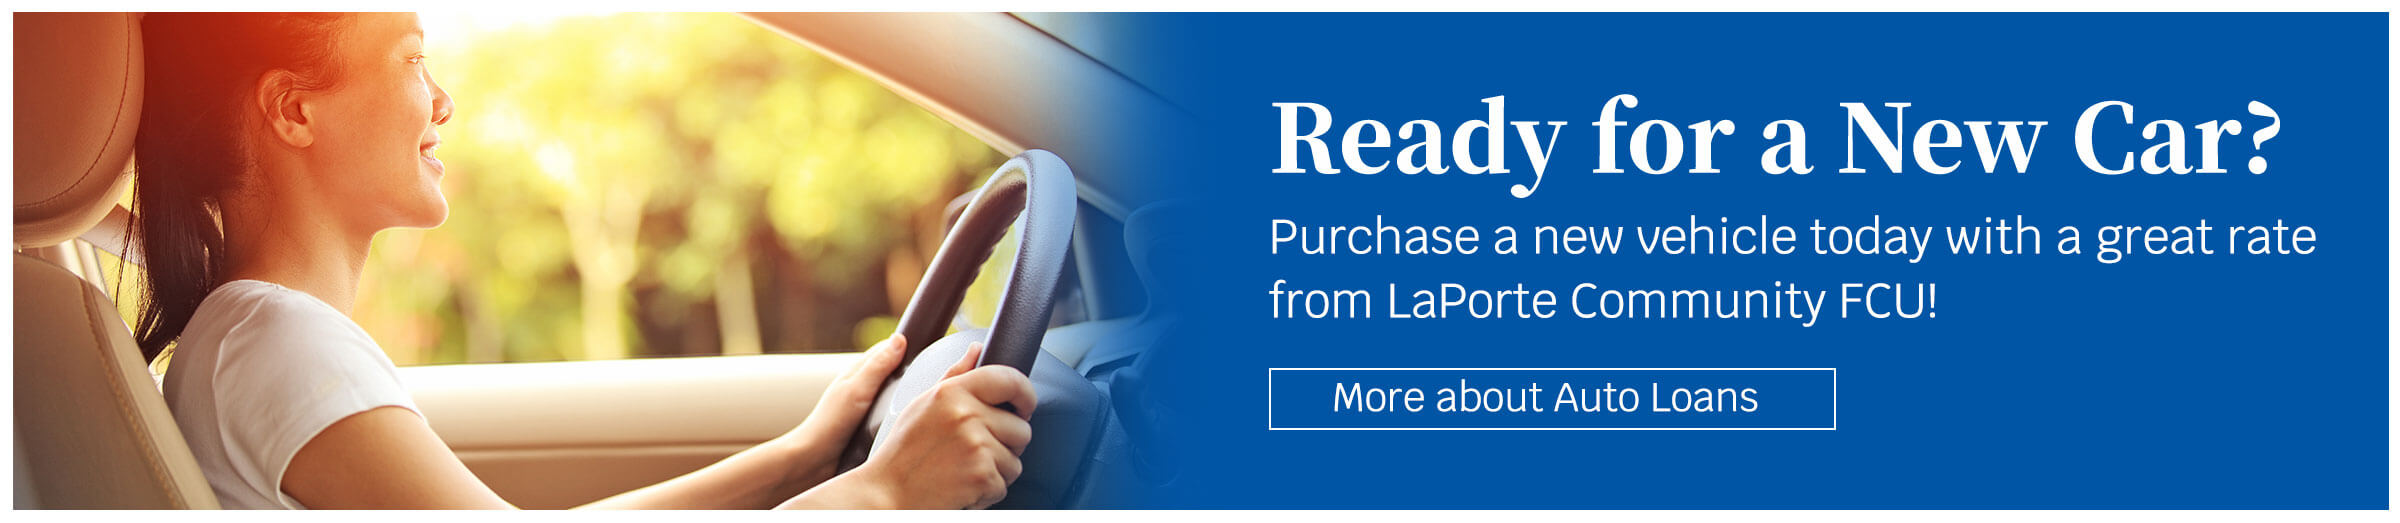 Ready for a new car? Purchase a new vehicle today with a great rate from LaPorte Community FCU! 2.99% apr for 72 months. More about auto loans